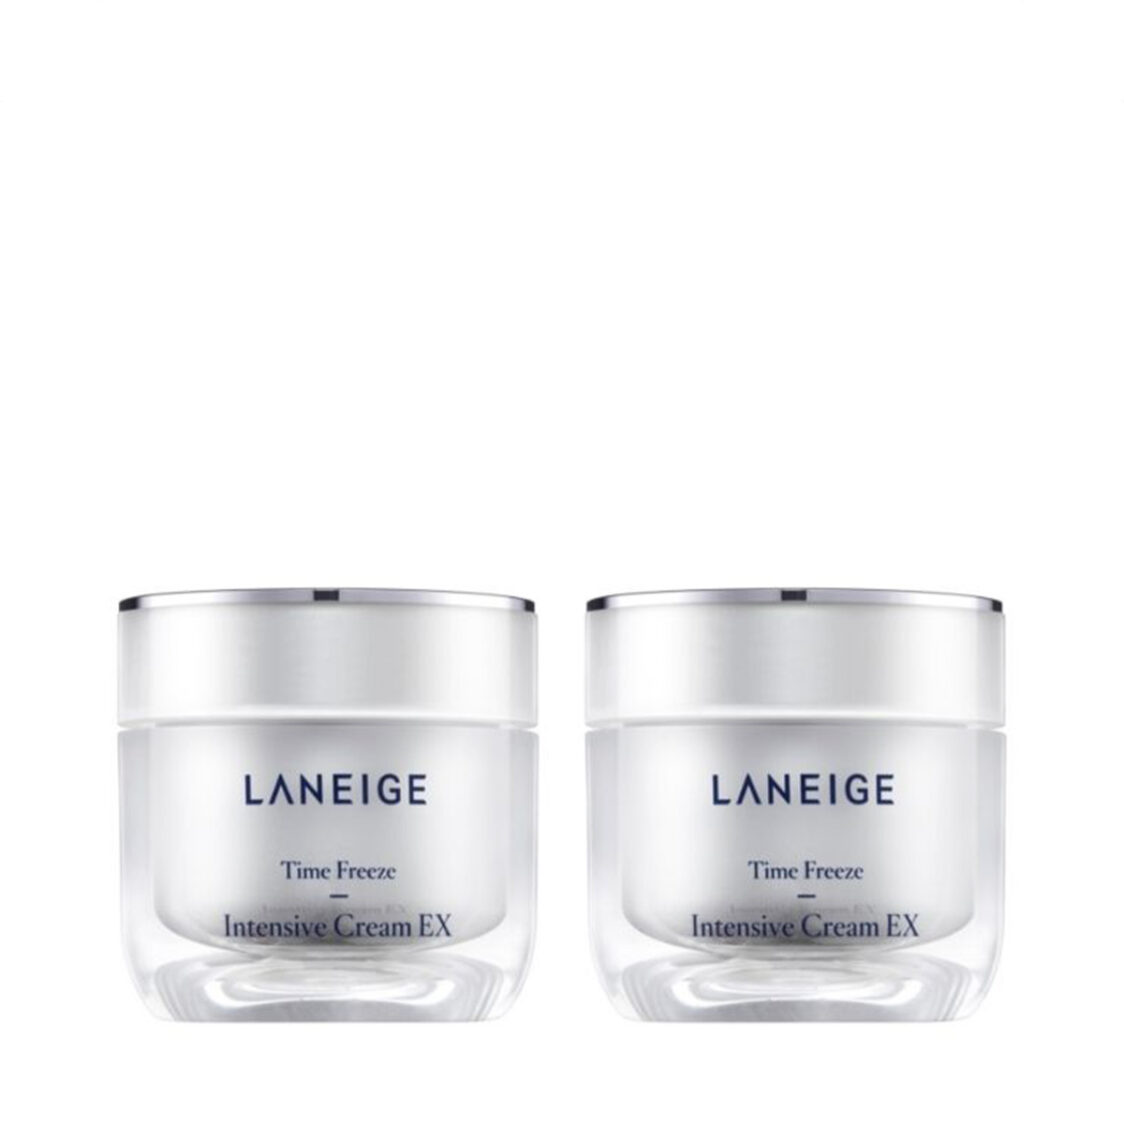 LANEIGE Time Freeze Intensive Cream EX UP 196